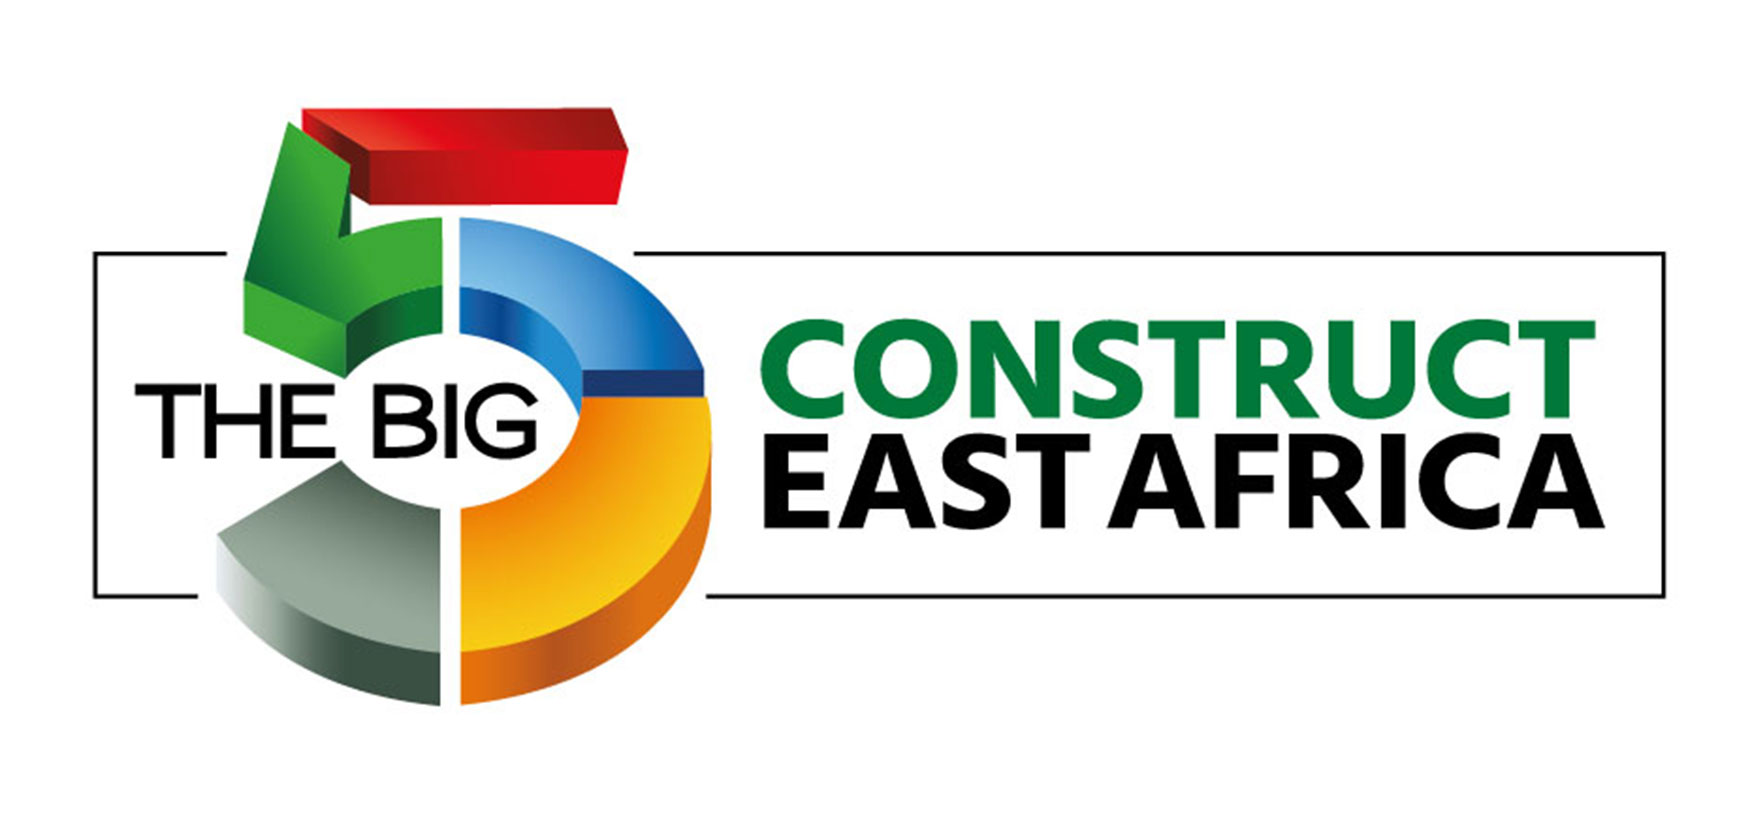 the-big-5-construct-east-africa-icon